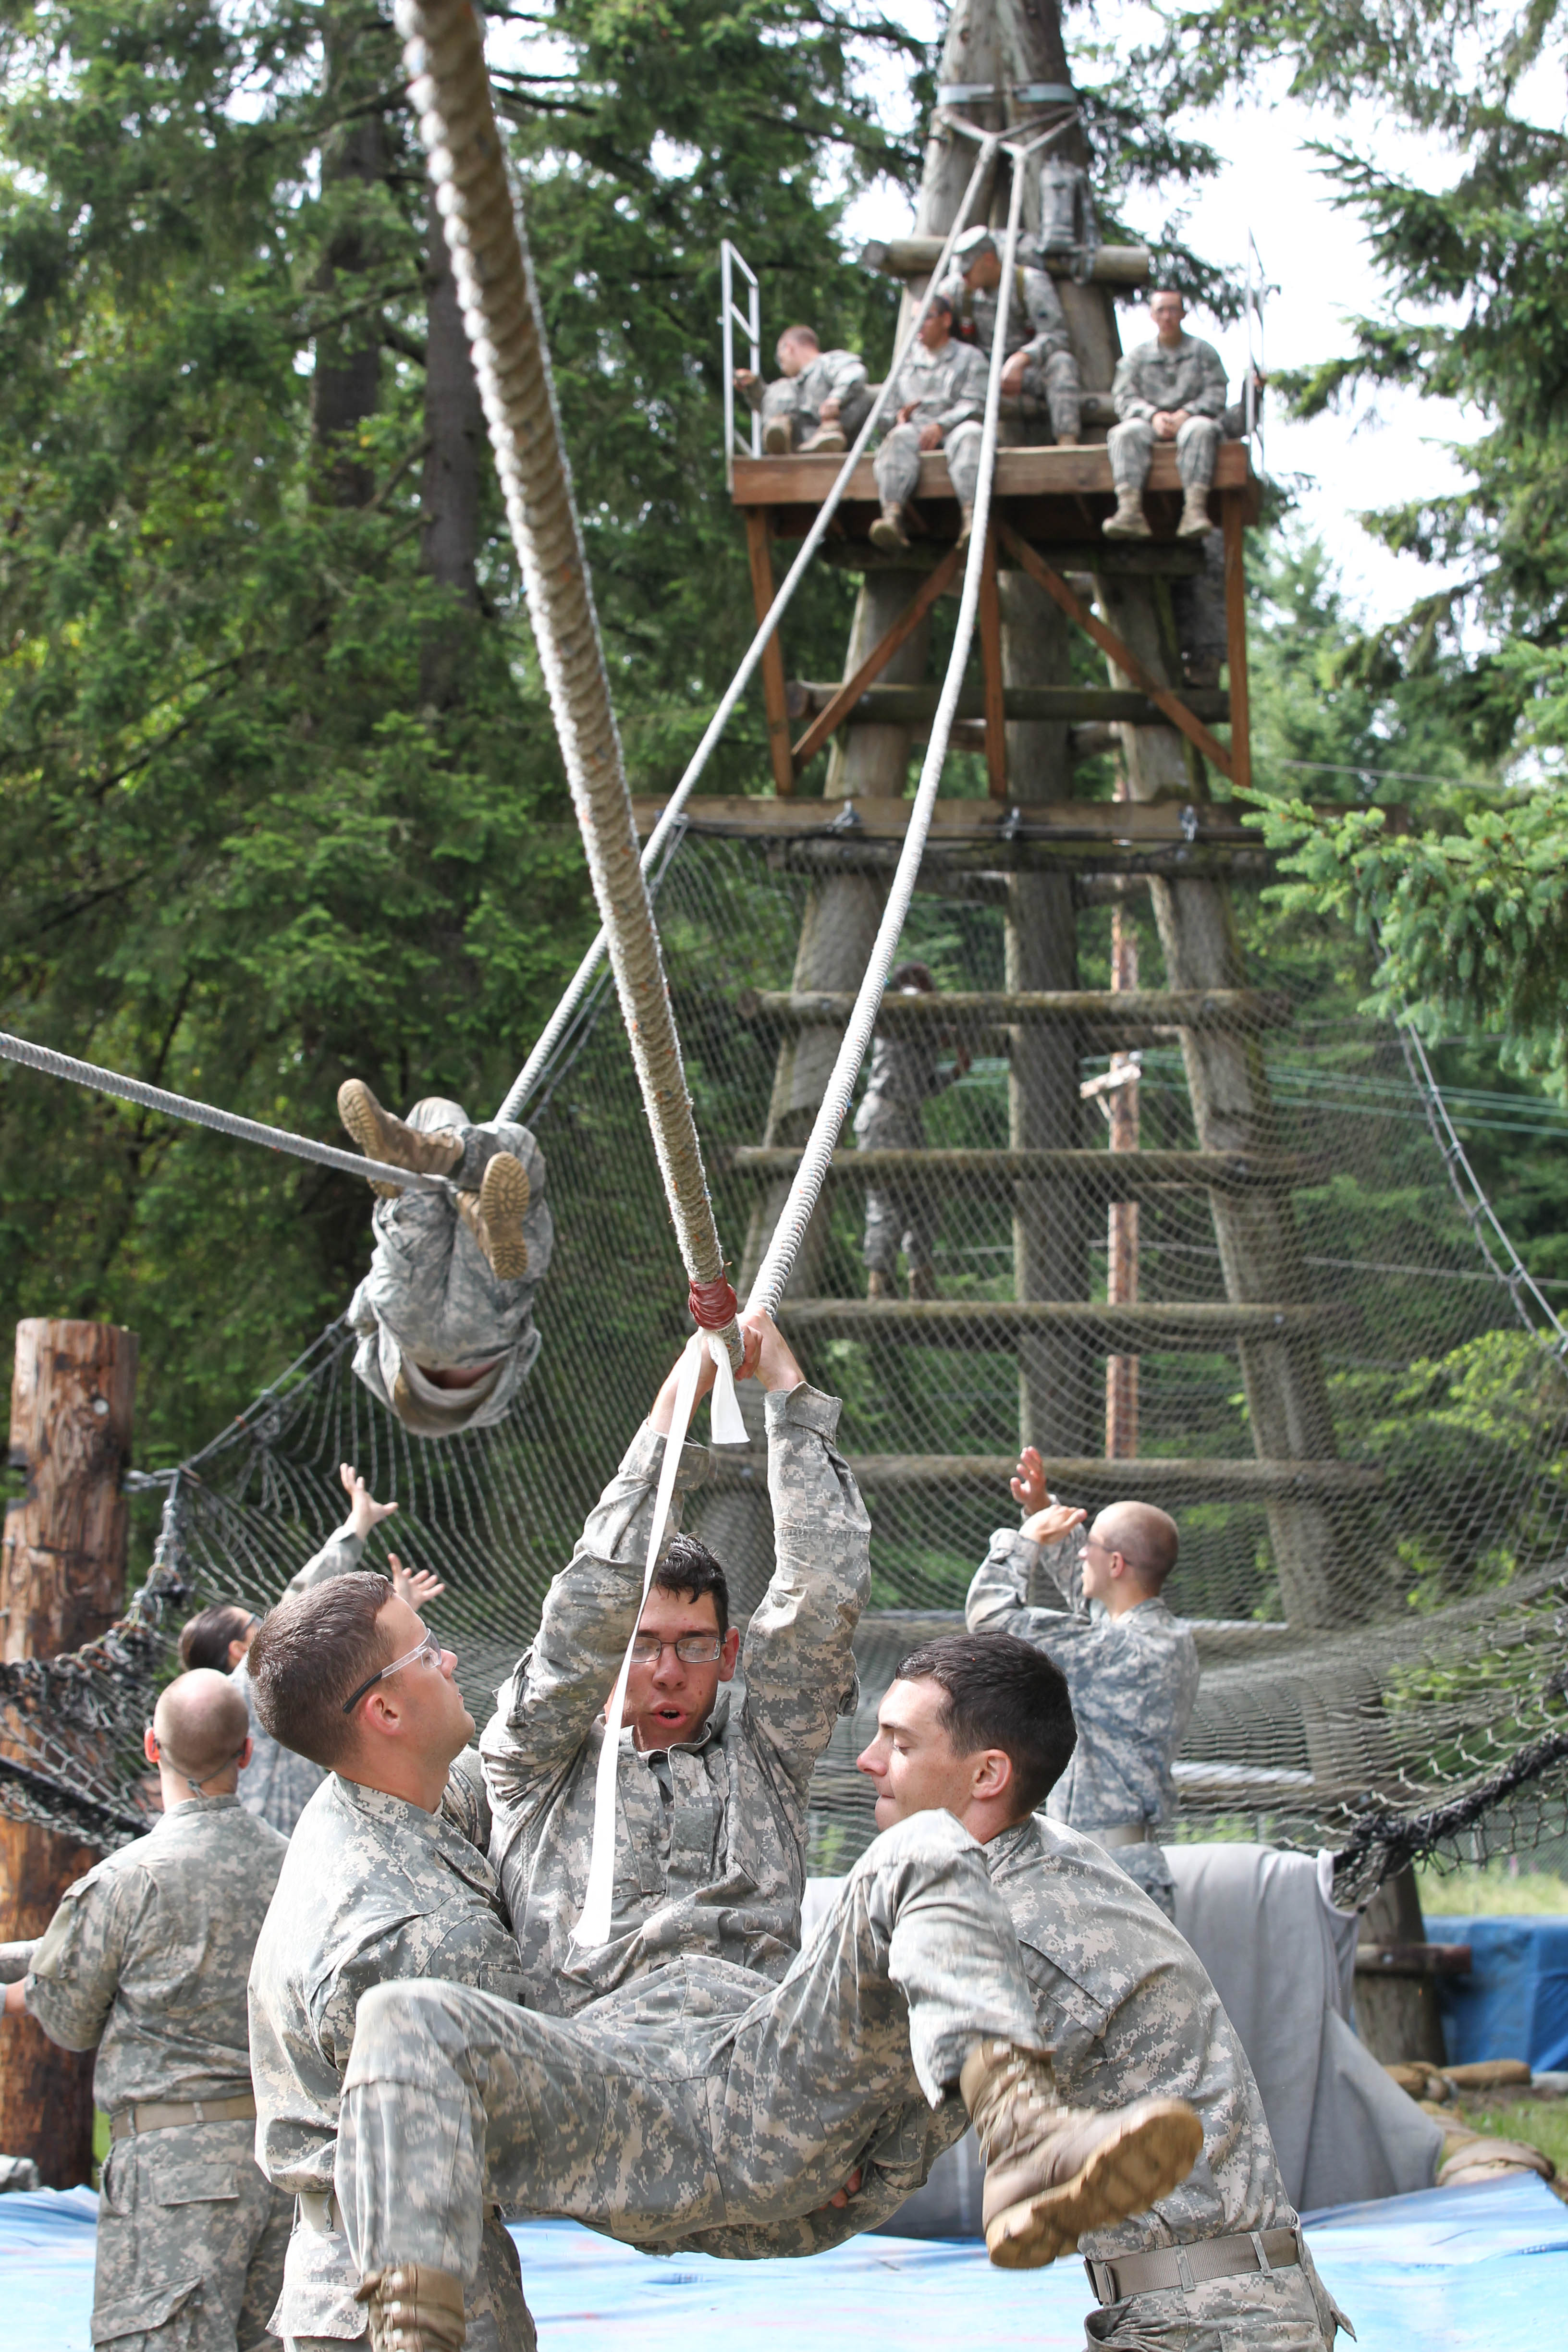 Third Regiment Cadets help one another down from the Inverted Rope Descent at the Confidence Obstacle Course this morning. The course is designed to promote teamwork and build confidence in the Cadets.